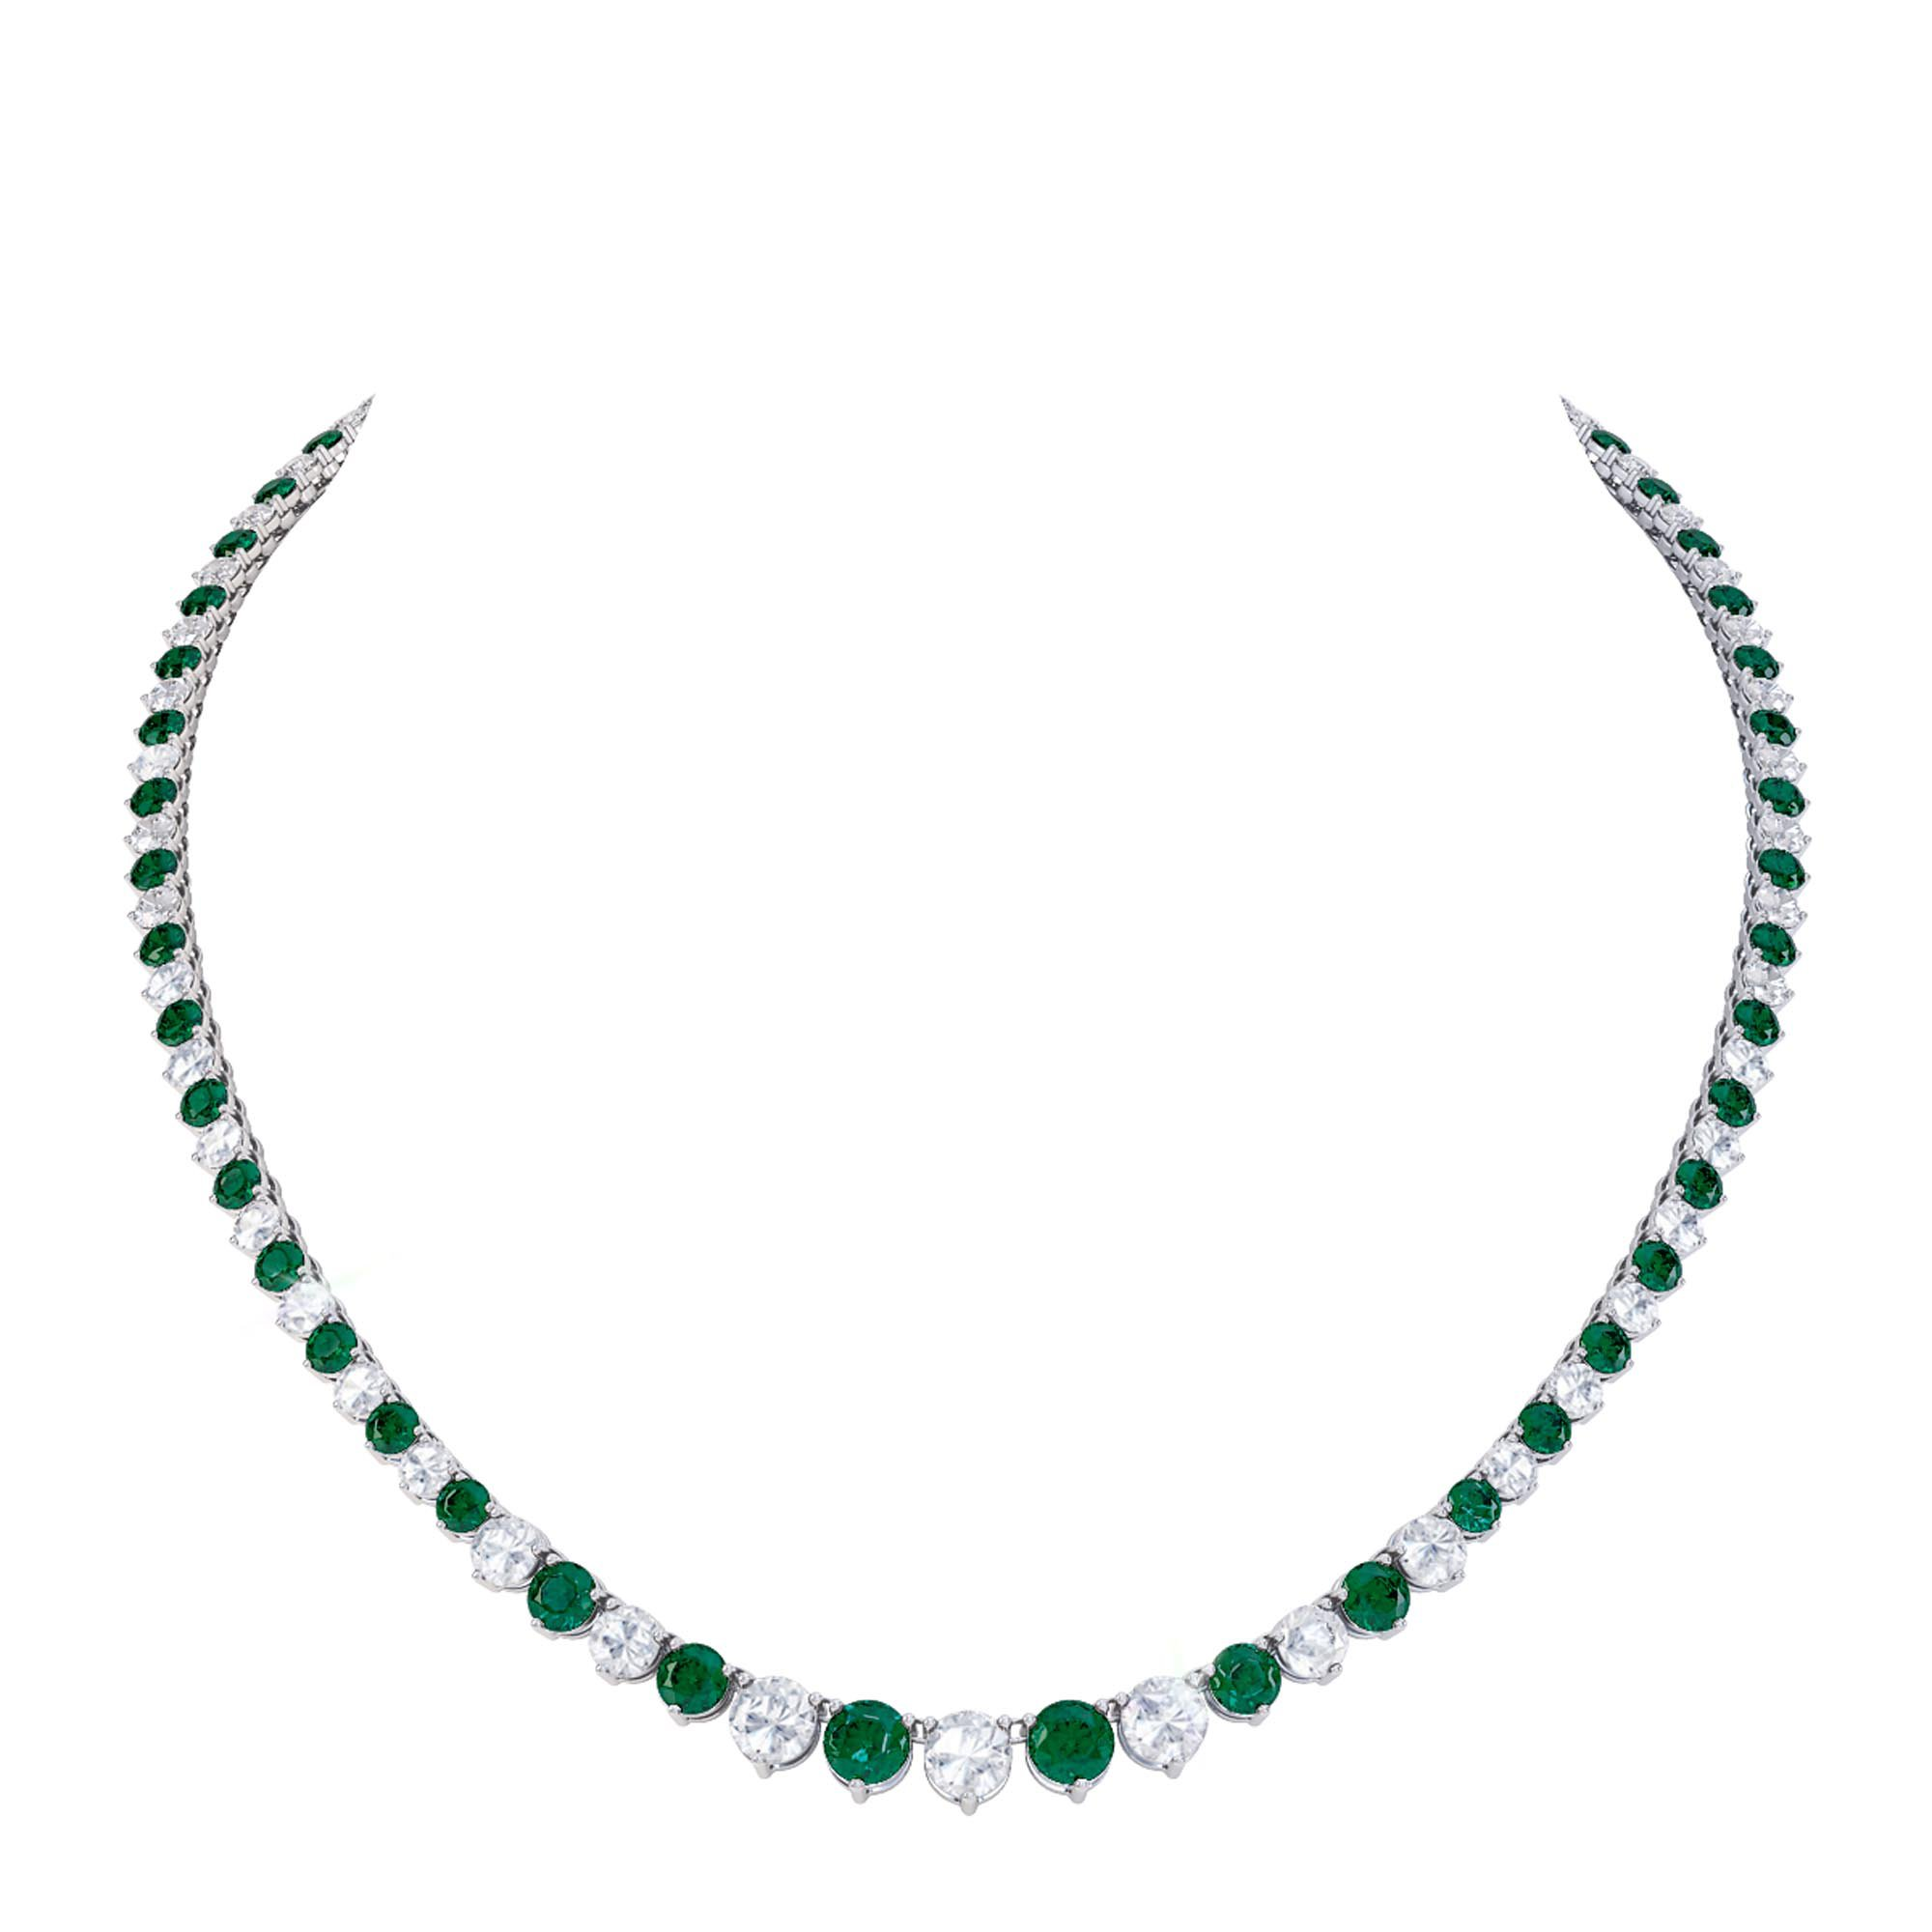 Eternity Emerald Platinum Plated Silver Tennis Necklace Jian London Silver Necklaces